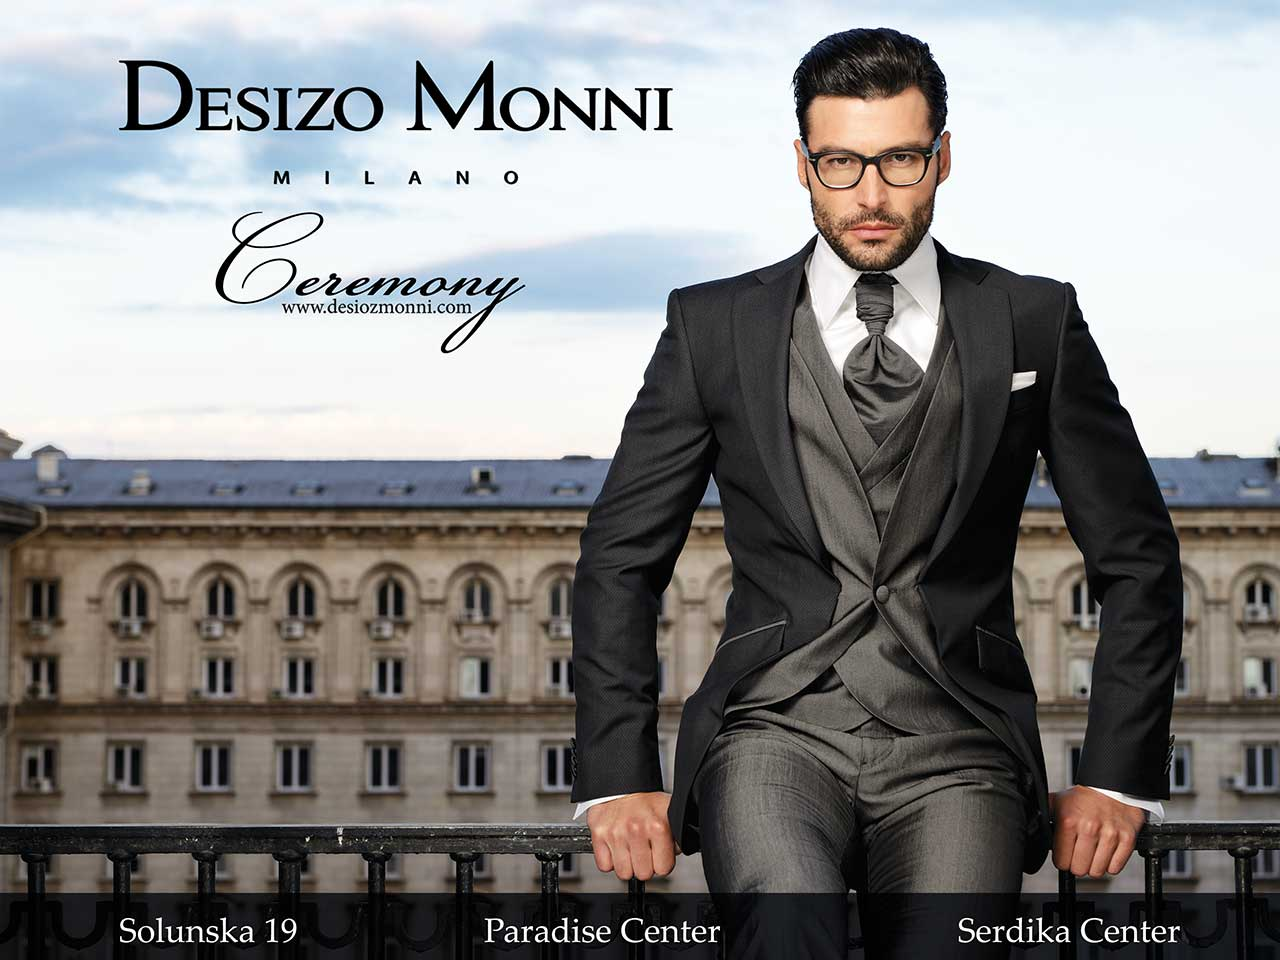 Desizo Monni collection Ceremony 2017 by Dilian Markov, model Marian Kurpanov